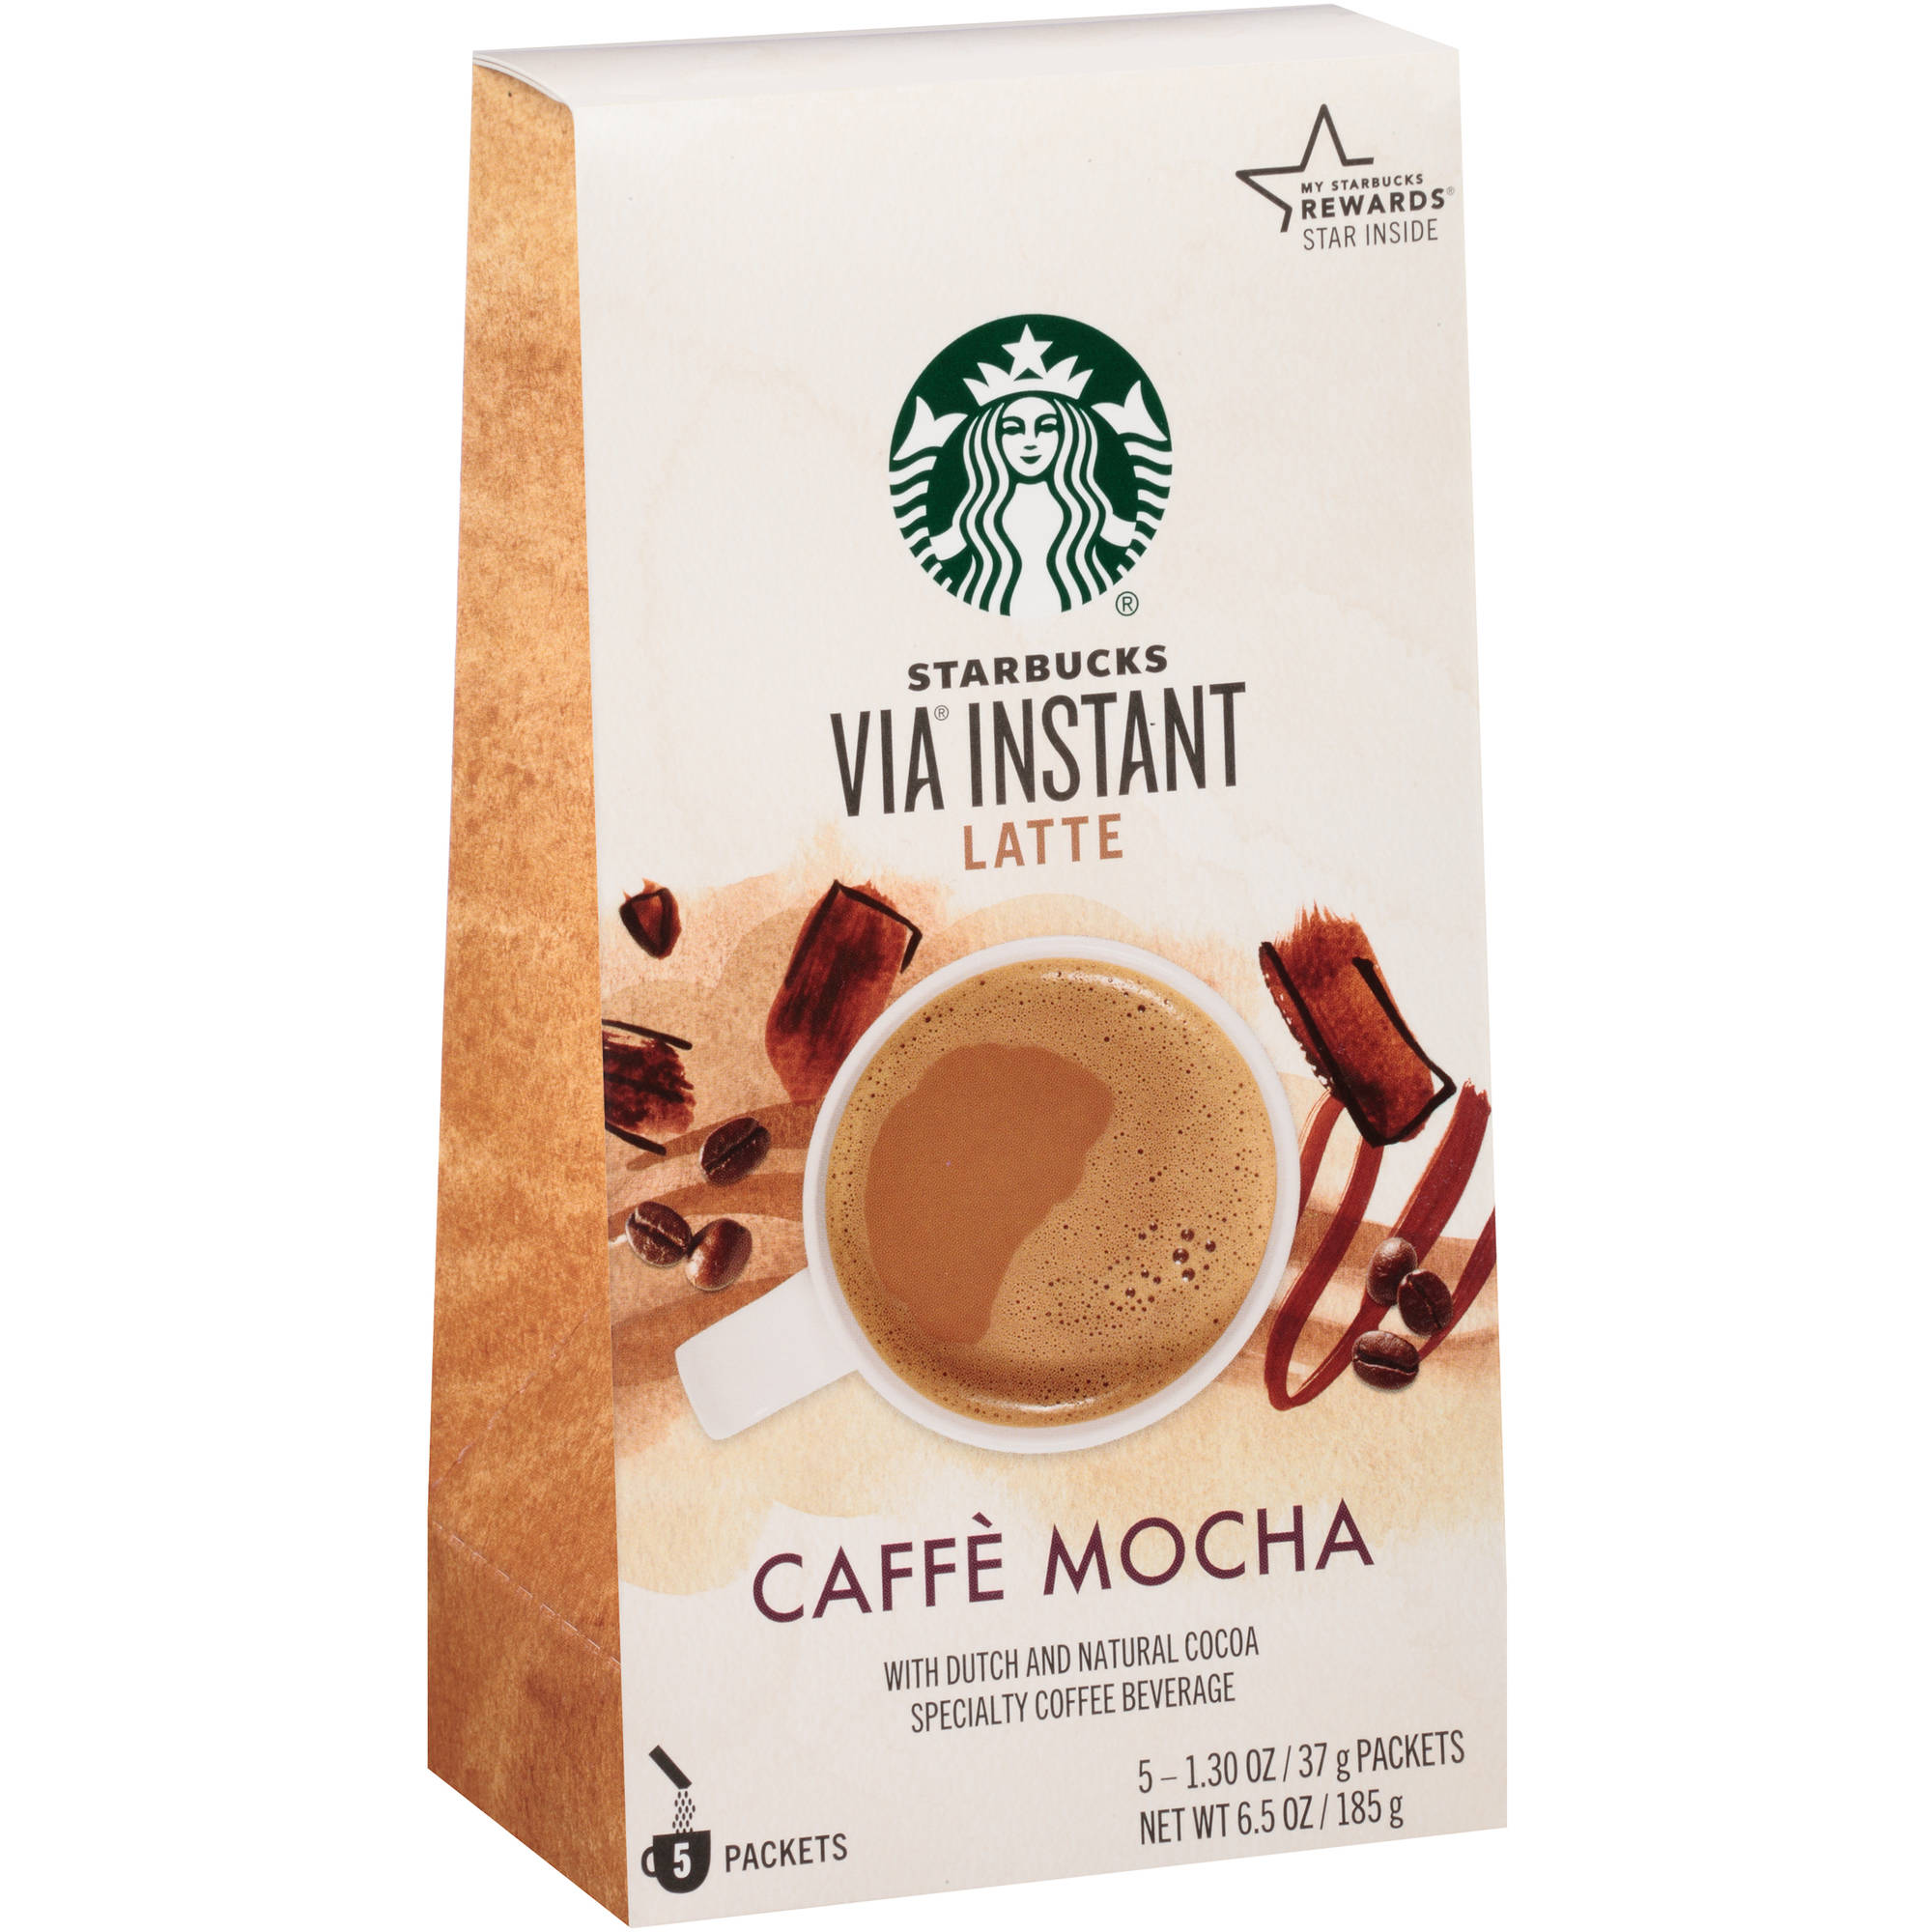 Starbucks VIA Latte Caffe Mocha Specialty Coffee Beverage, 5 ct, 6.53 oz